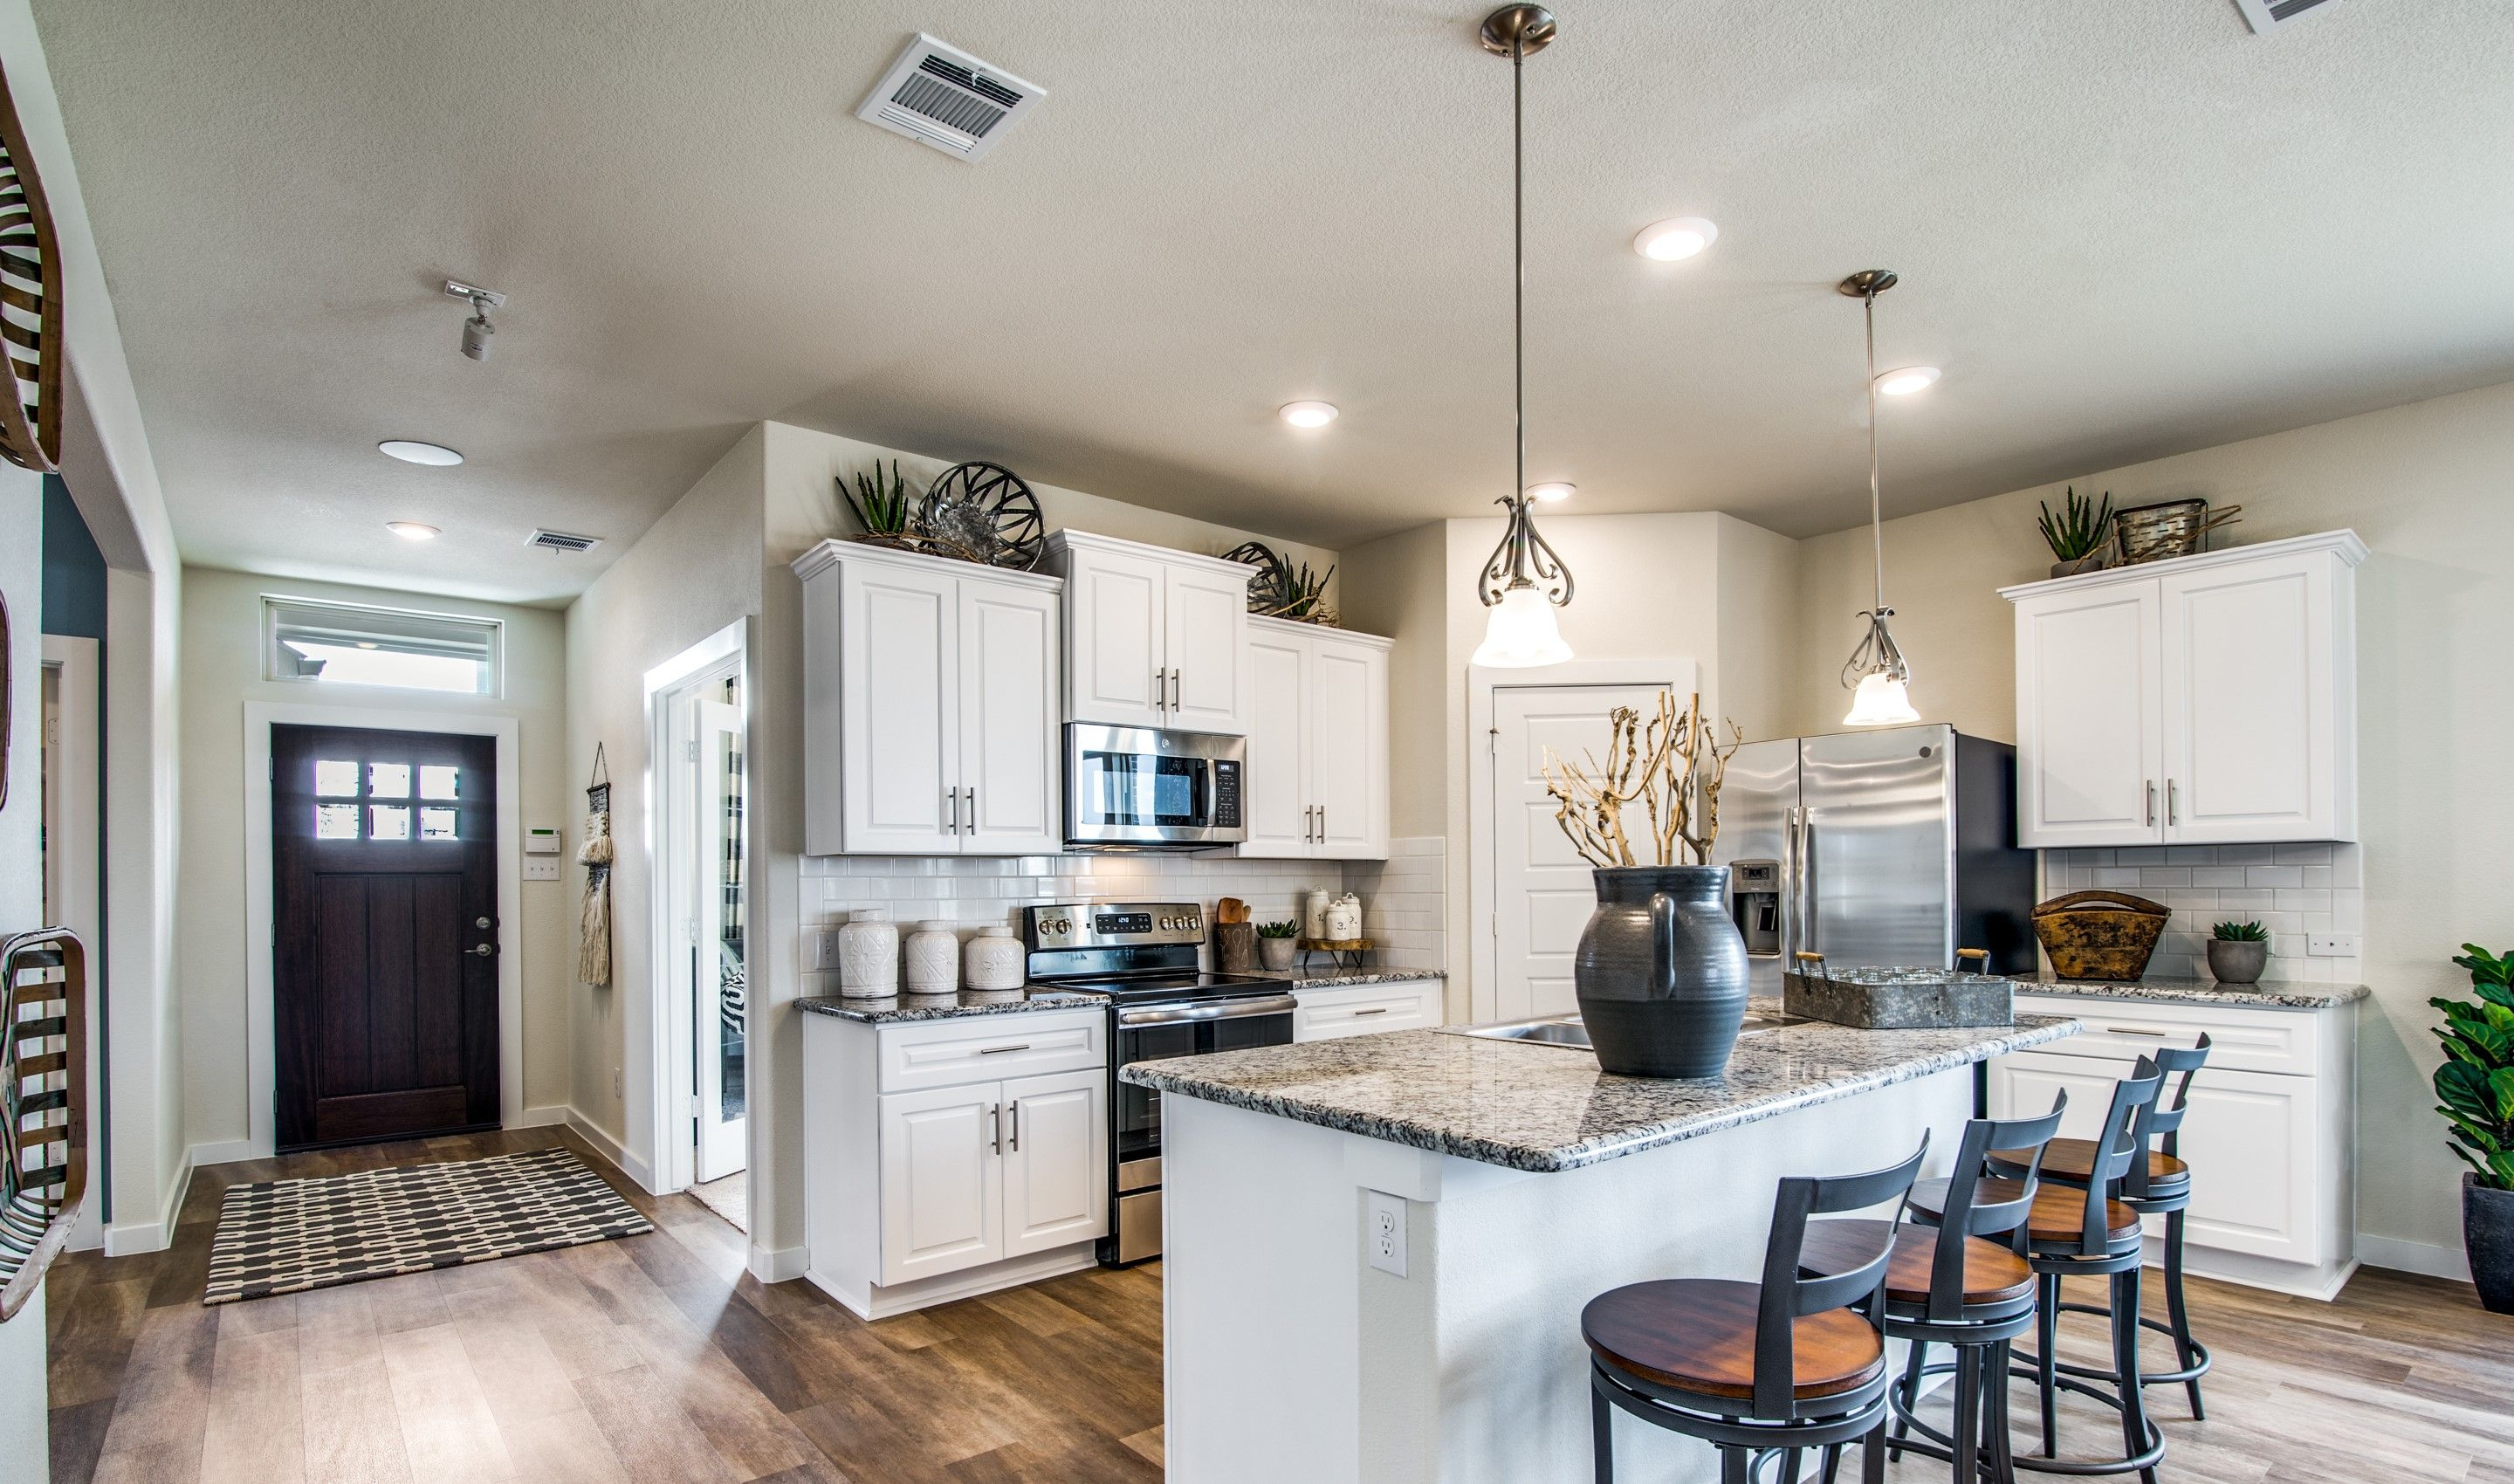 Kitchen featured in the Birkdale II By K. Hovnanian® Homes in Fort Worth, TX